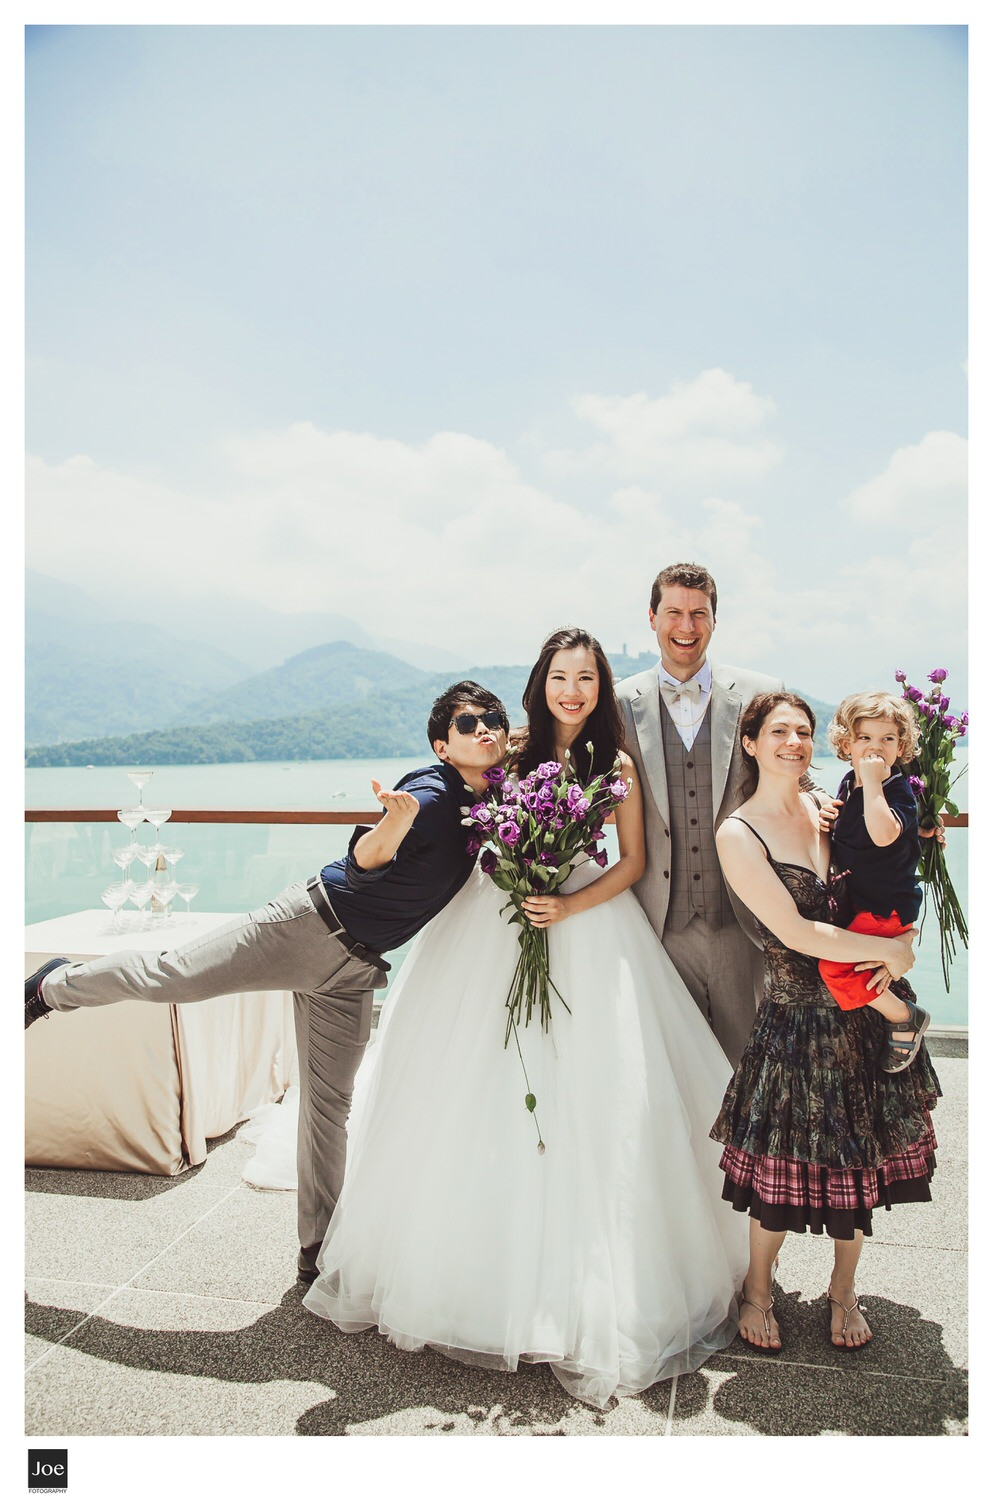 joe-fotography-the-lalu-sun-moon-lake-wedding-kay-geoffrey-216.jpg